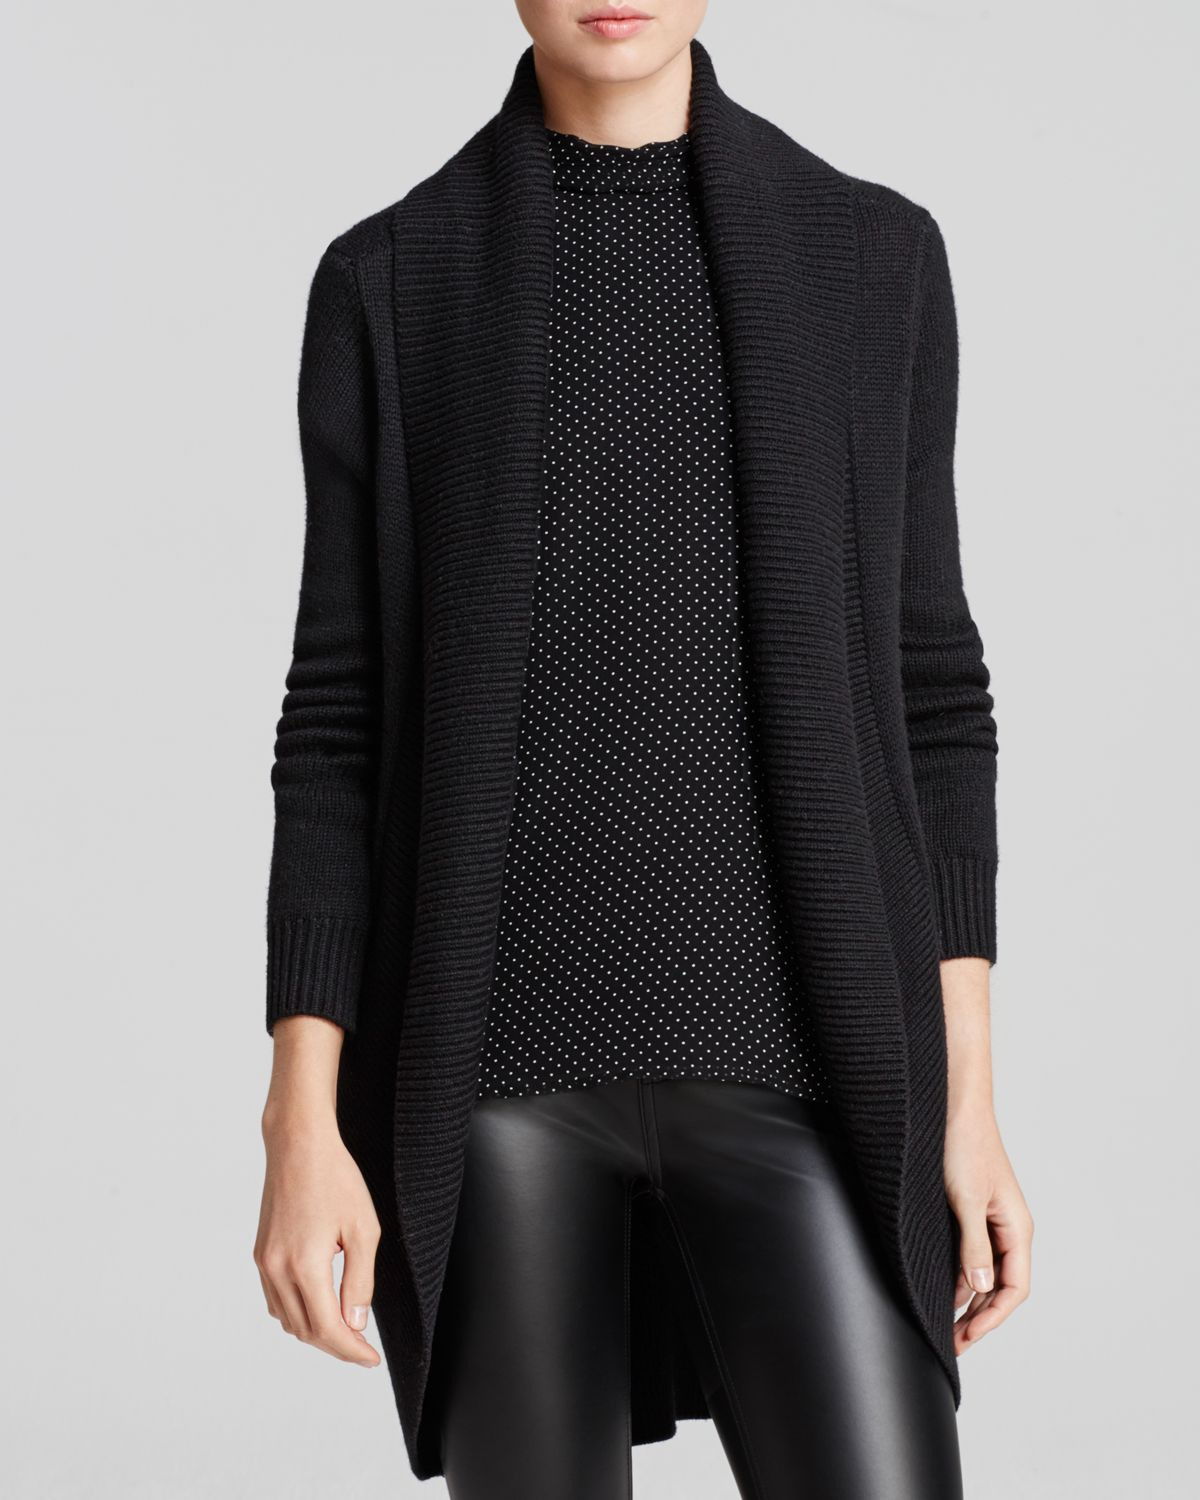 Joie Cardigan Levella Chunky Open Knit in Black | Lyst